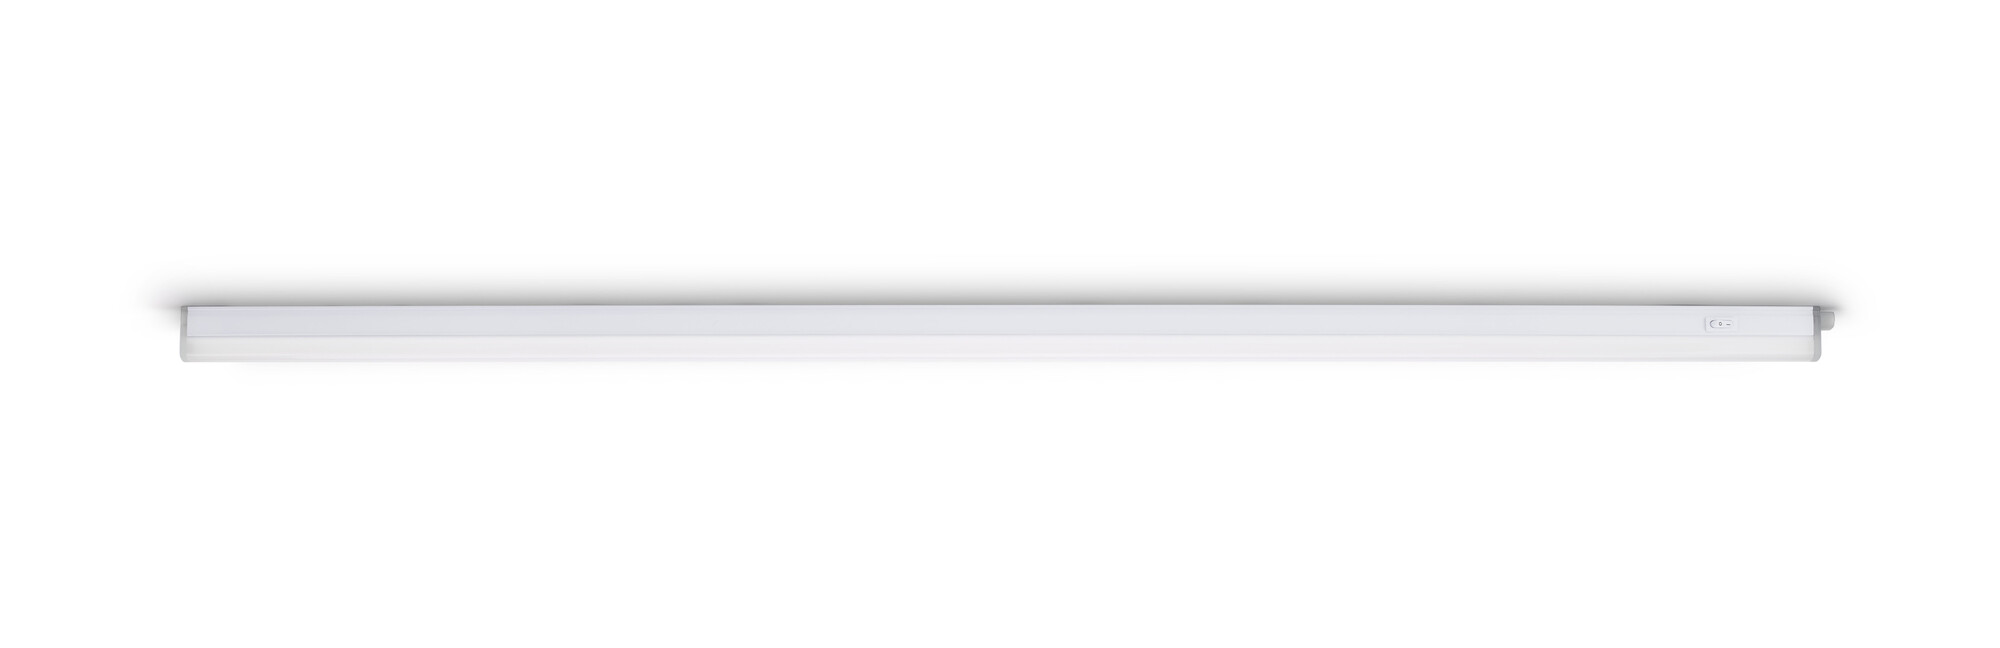 Philips LINEAR Plafonnier LED 1x18W/1600lm Blanc